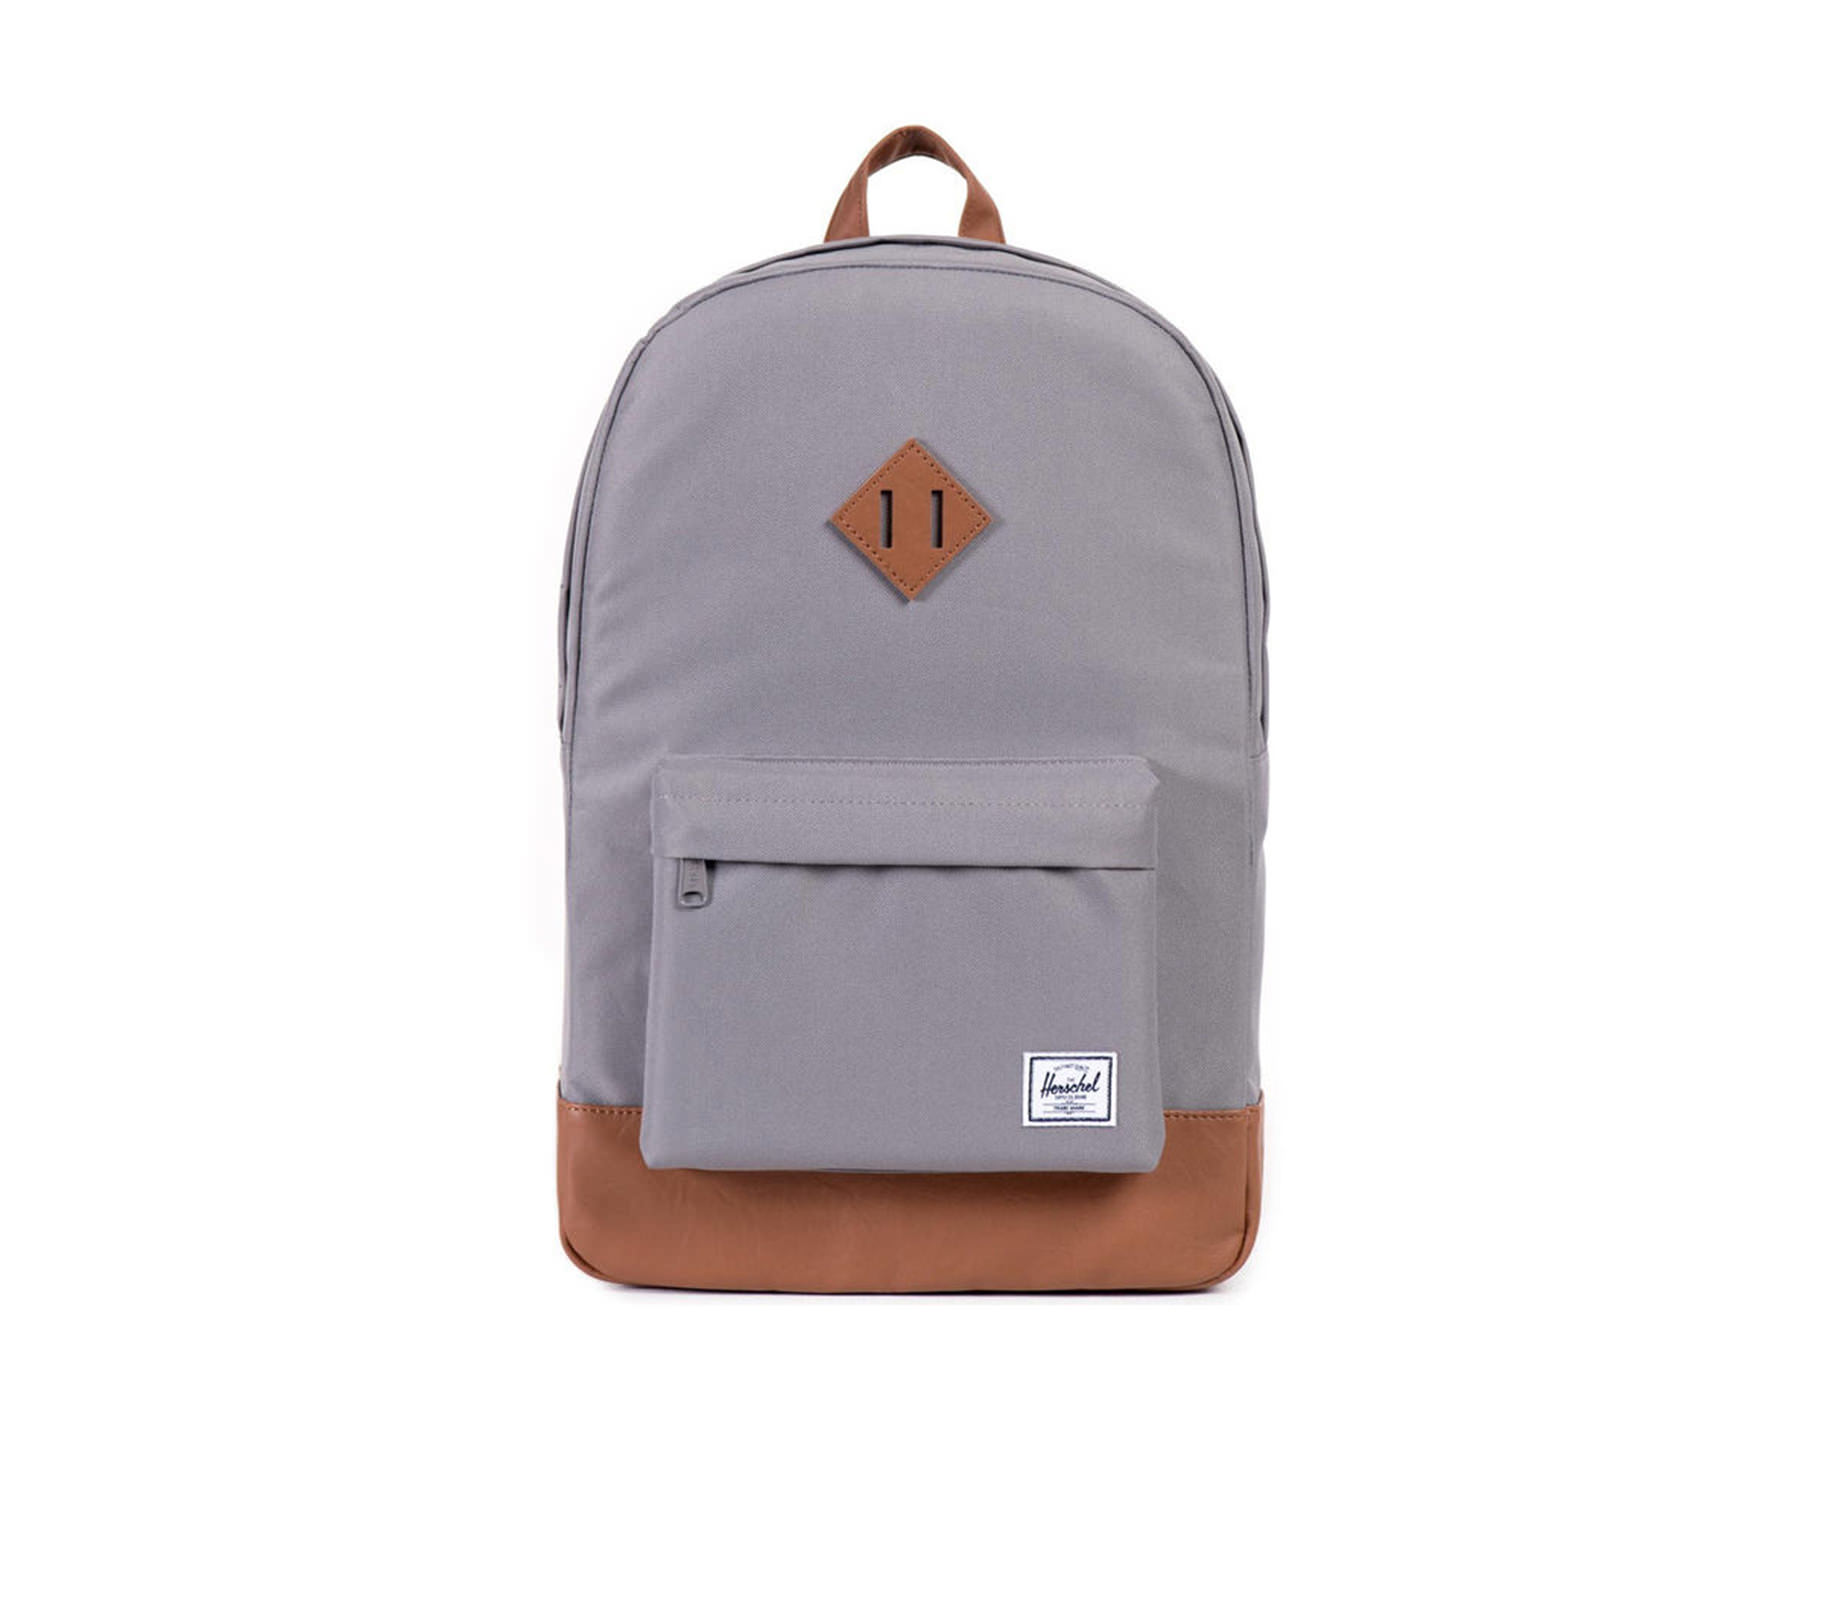 Balo du lịch HERSCHEL Heritage Backpack Grey/Tan Synthetic Leather